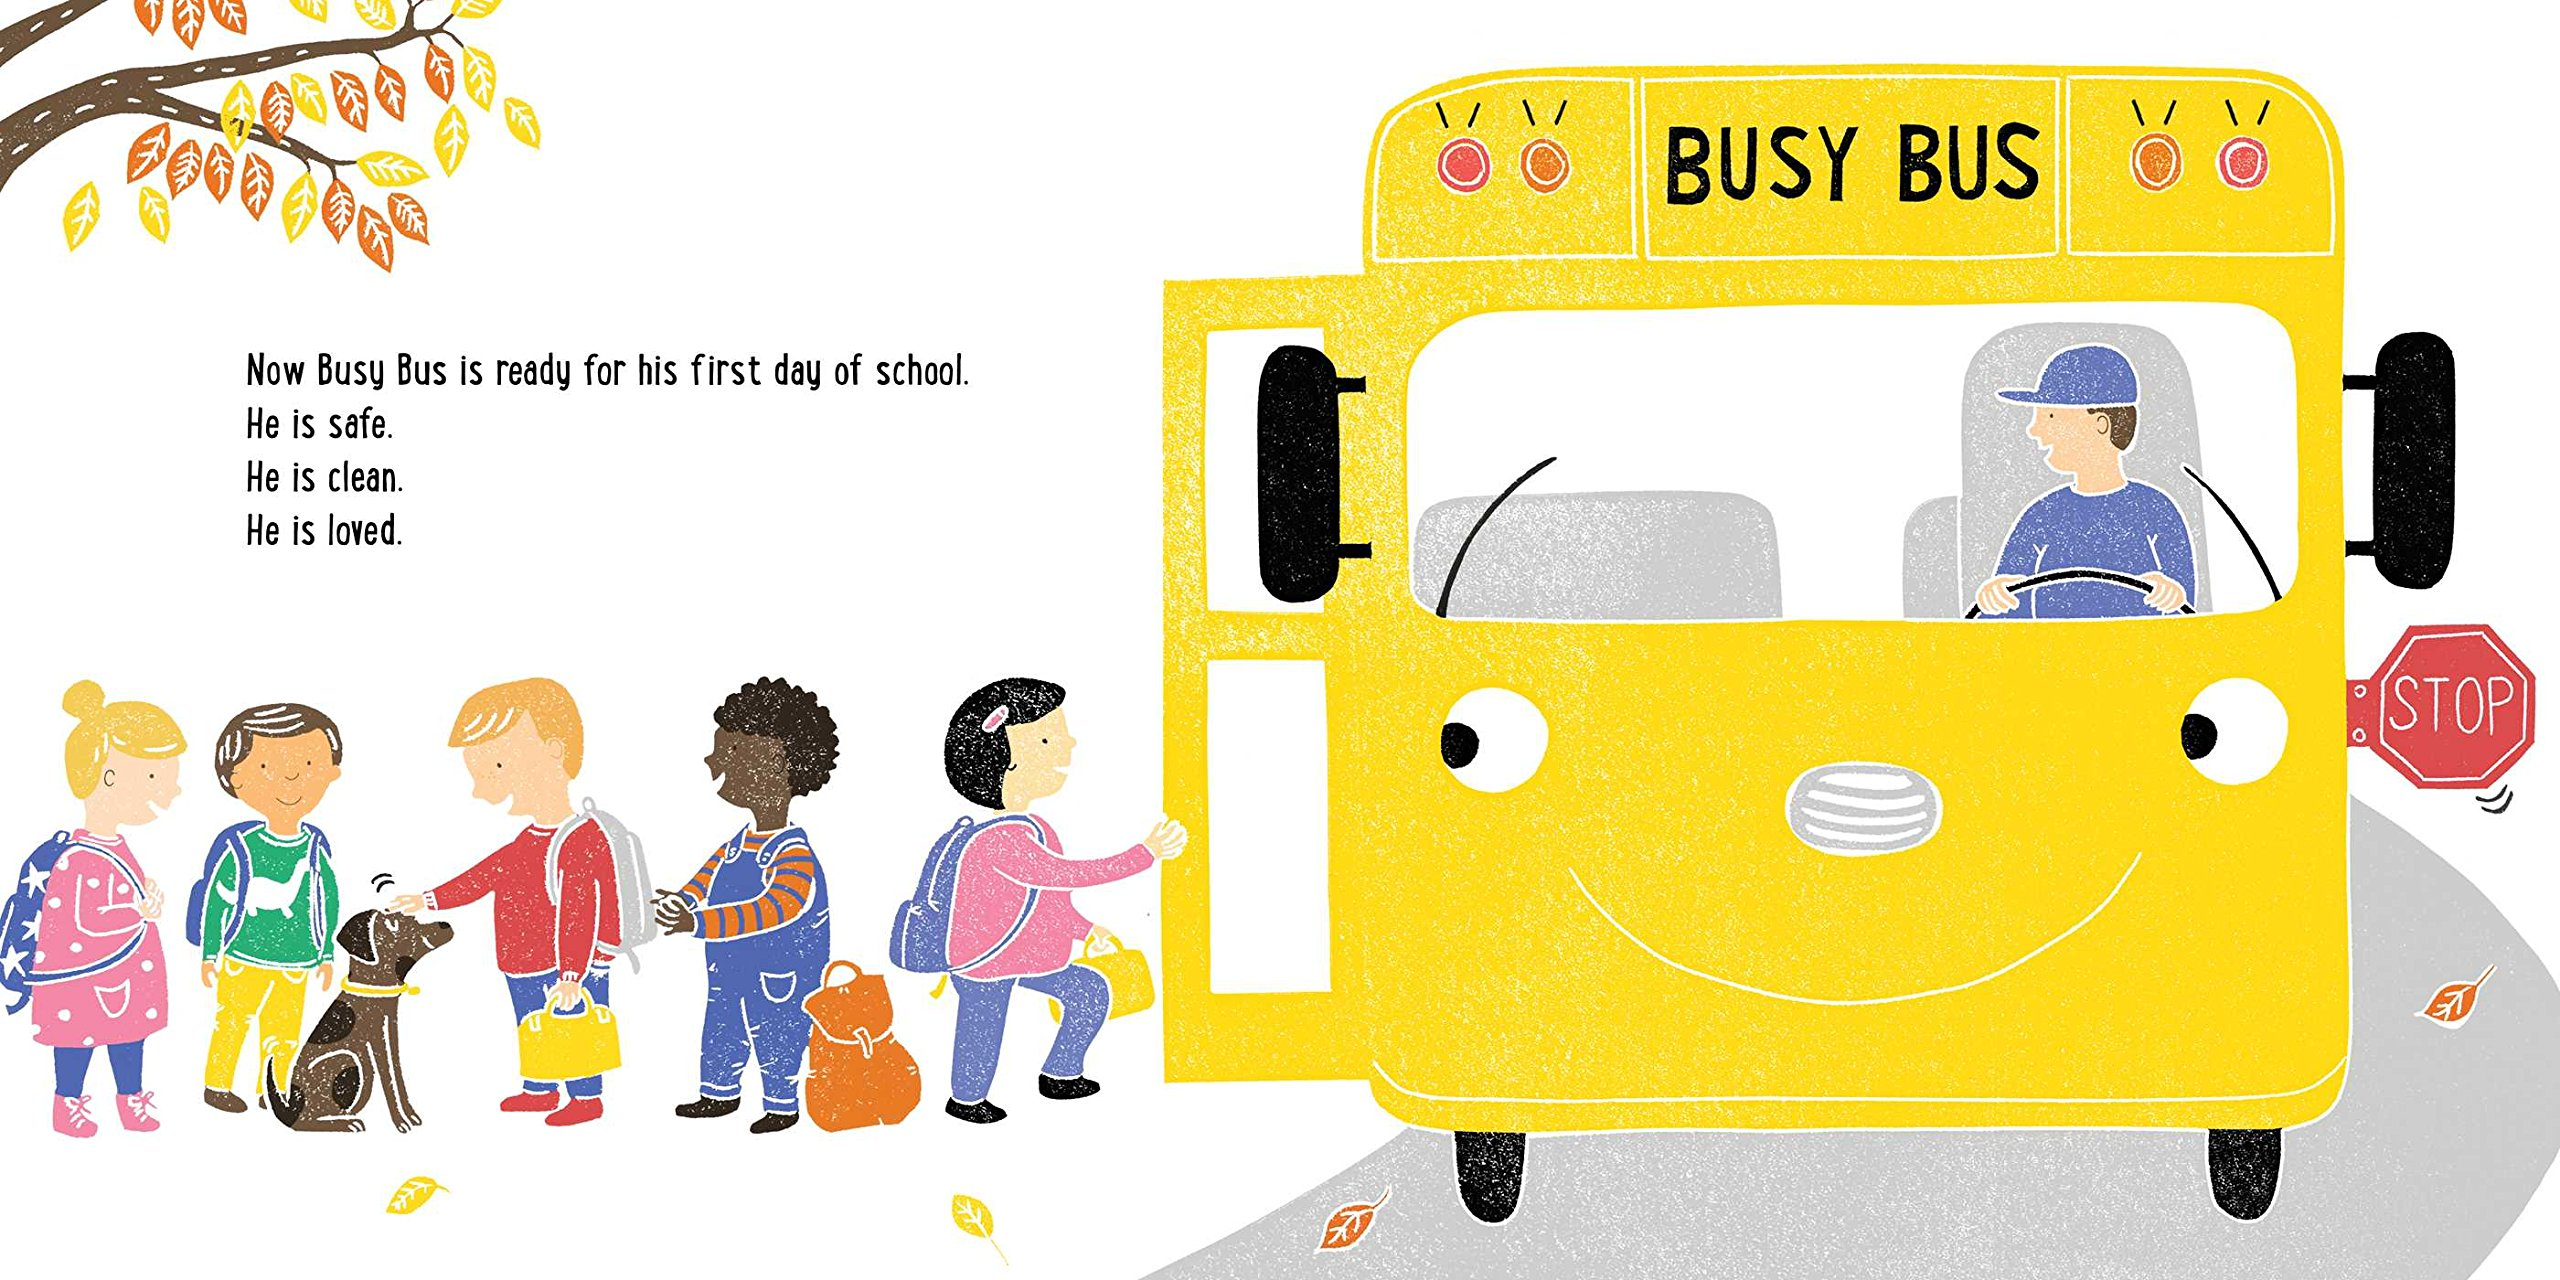 celebrate-picture-books-picture-book-review-it's-your-first-day-of-school-busy-bus-kids